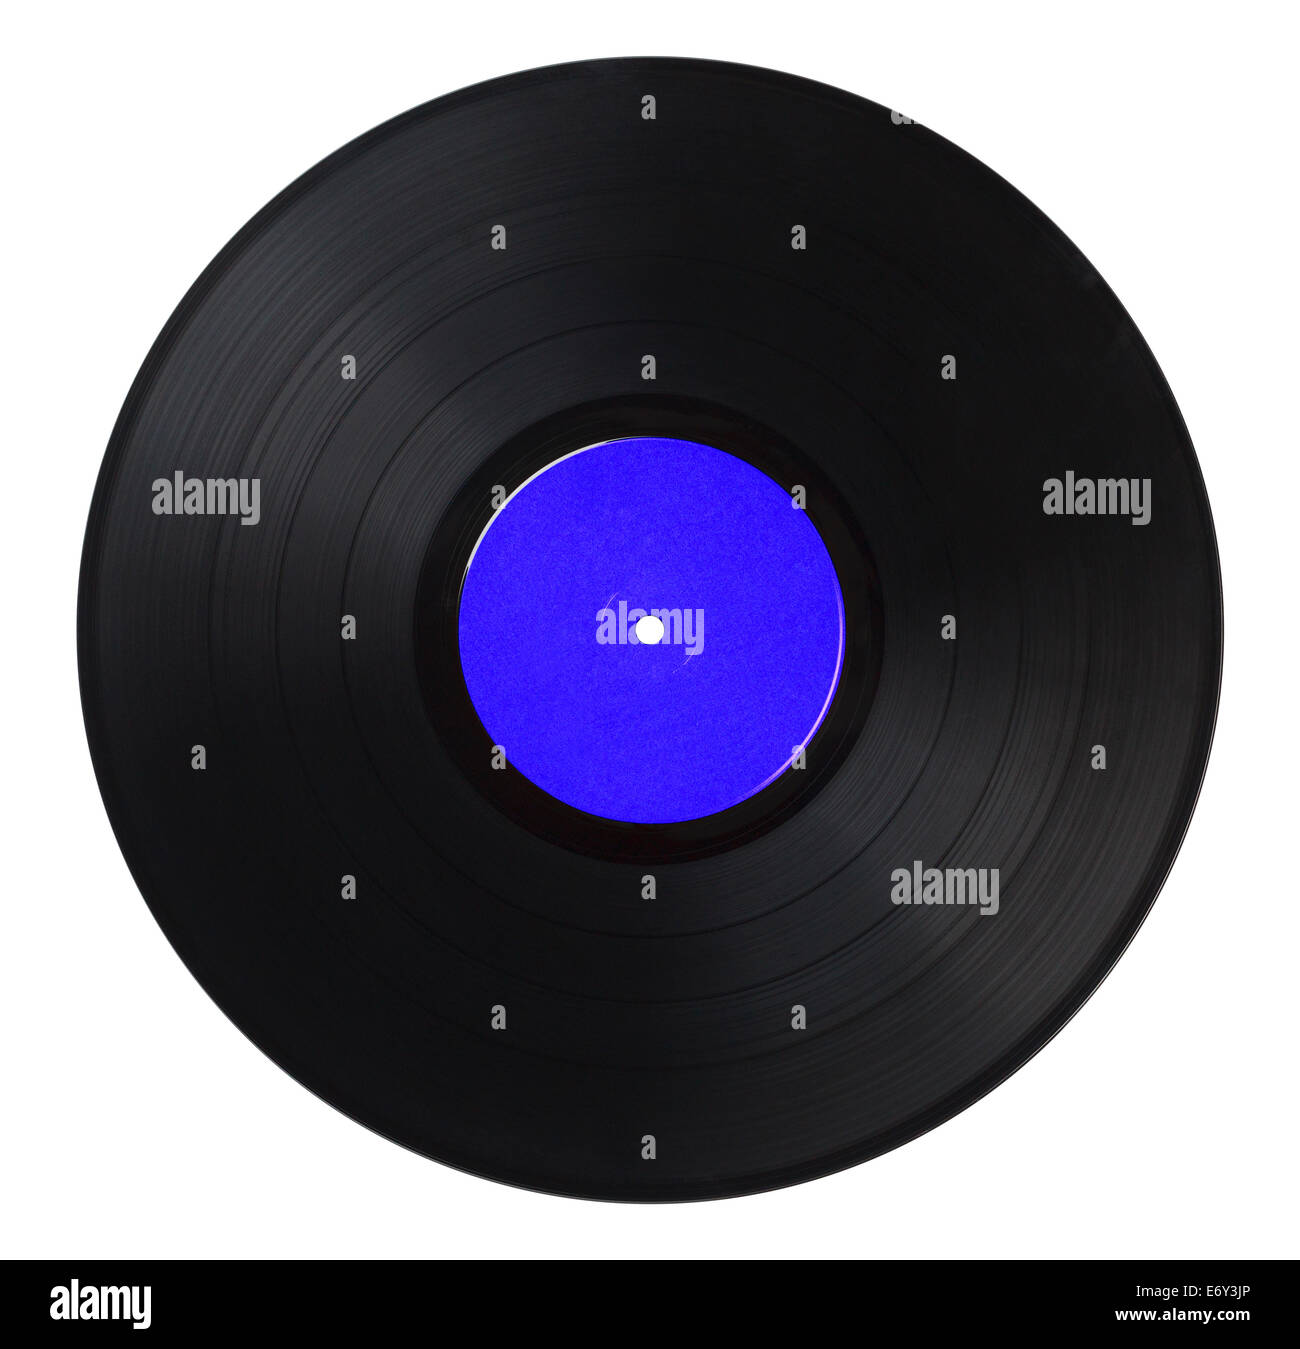 Black Music Record With Blue Label Isolated on White Background. - Stock Image